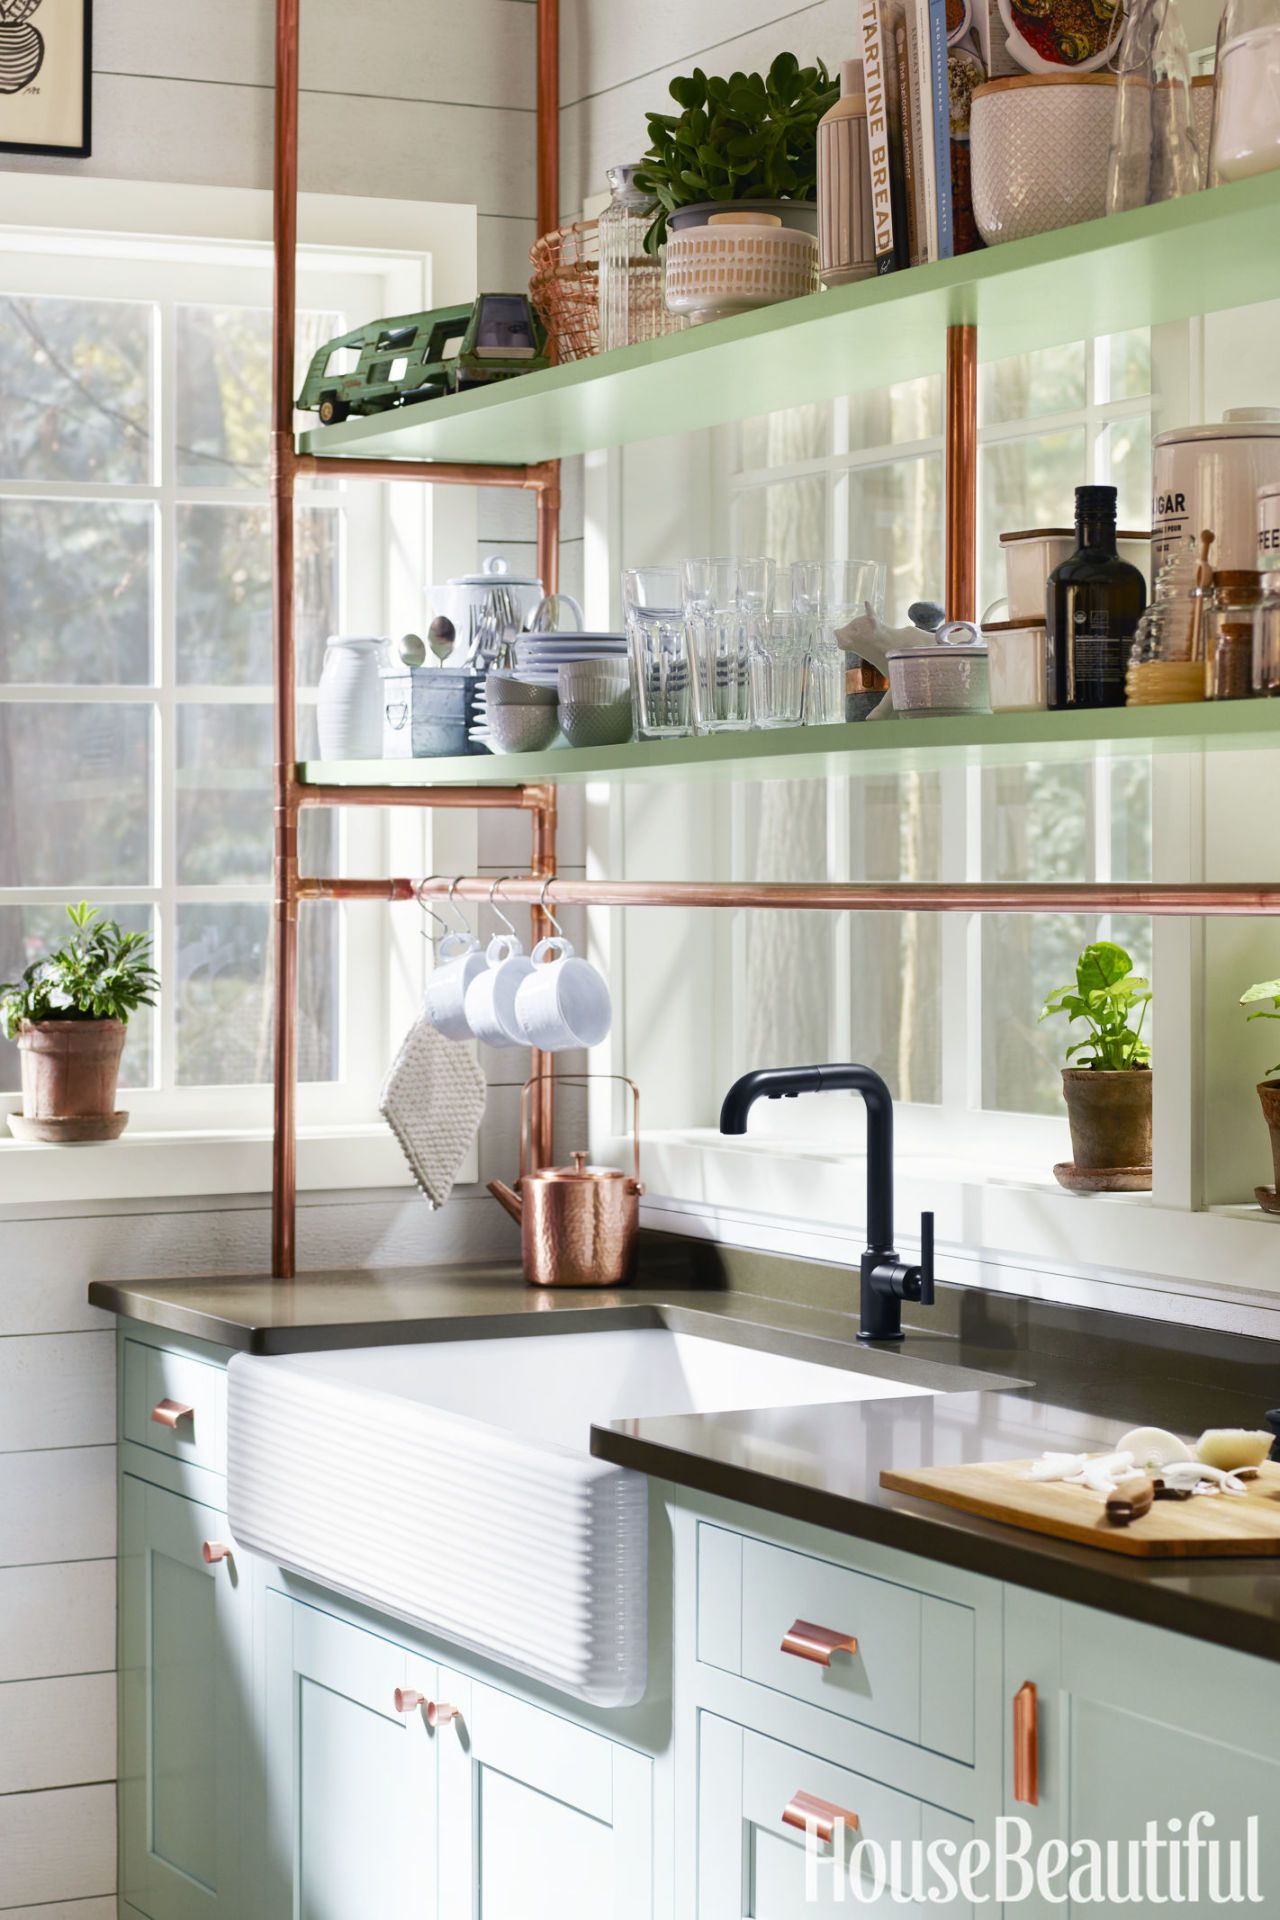 A tiny corner became the cutest kitchen with smart strategies